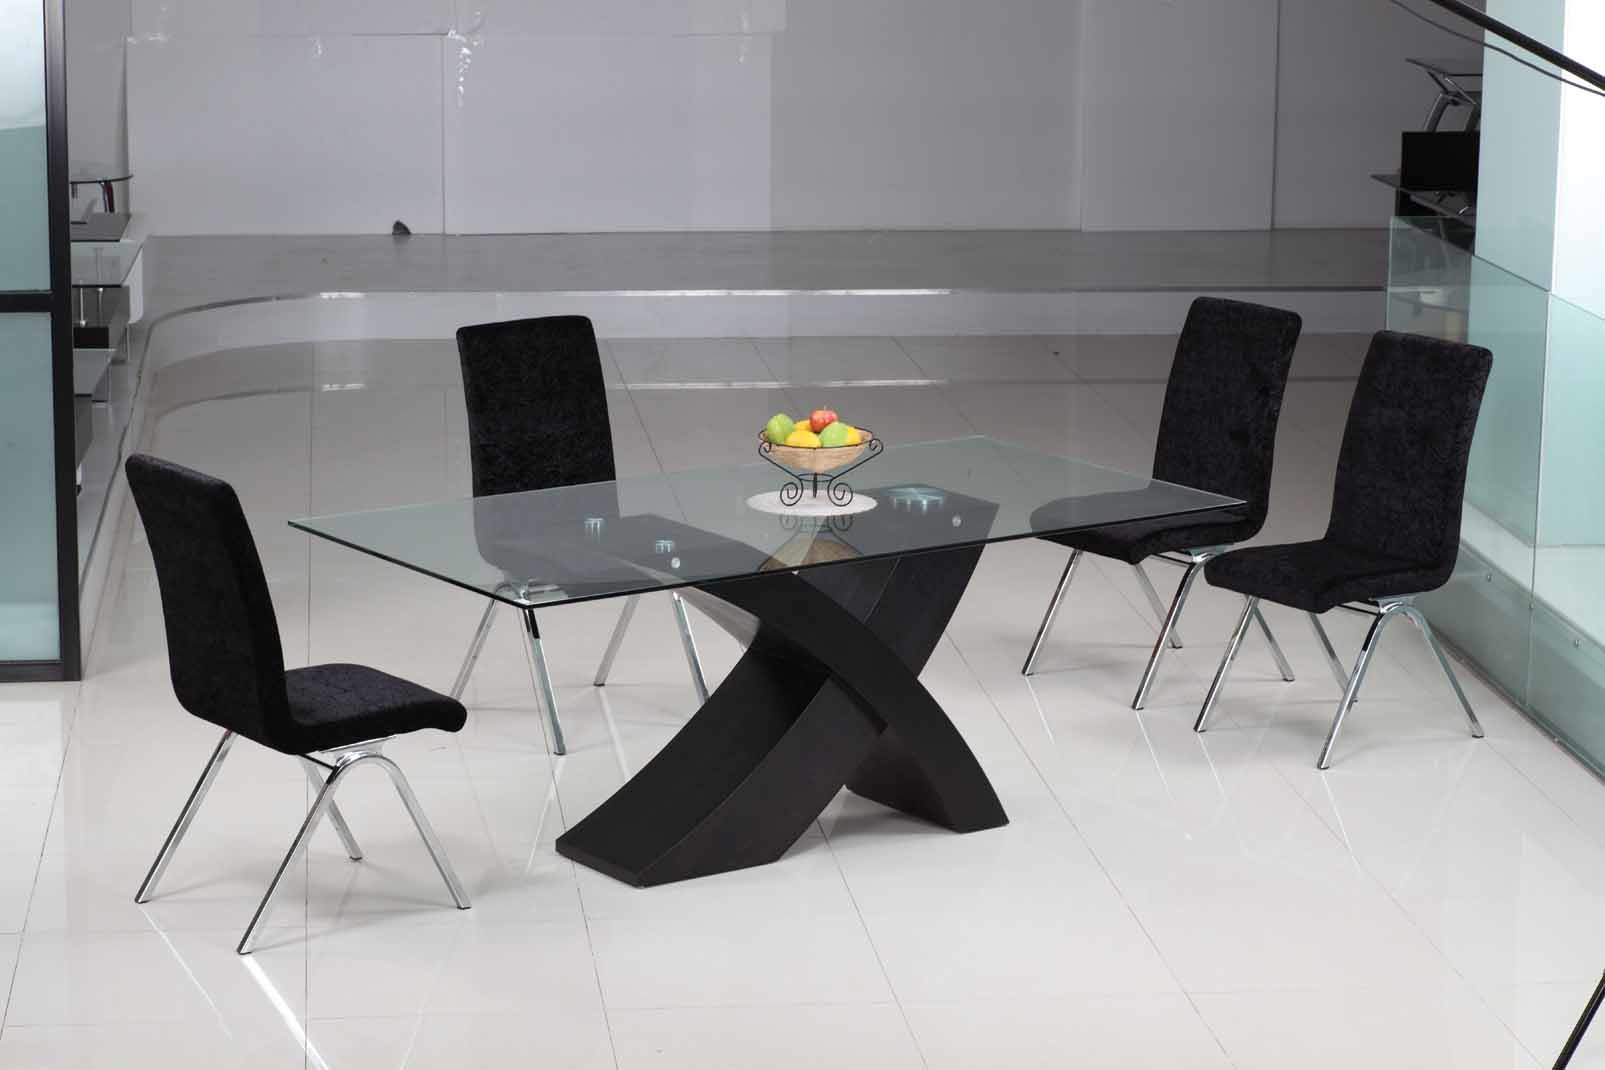 China fancy dining table with metal chair d202 c220 for Fancy dining table and chairs